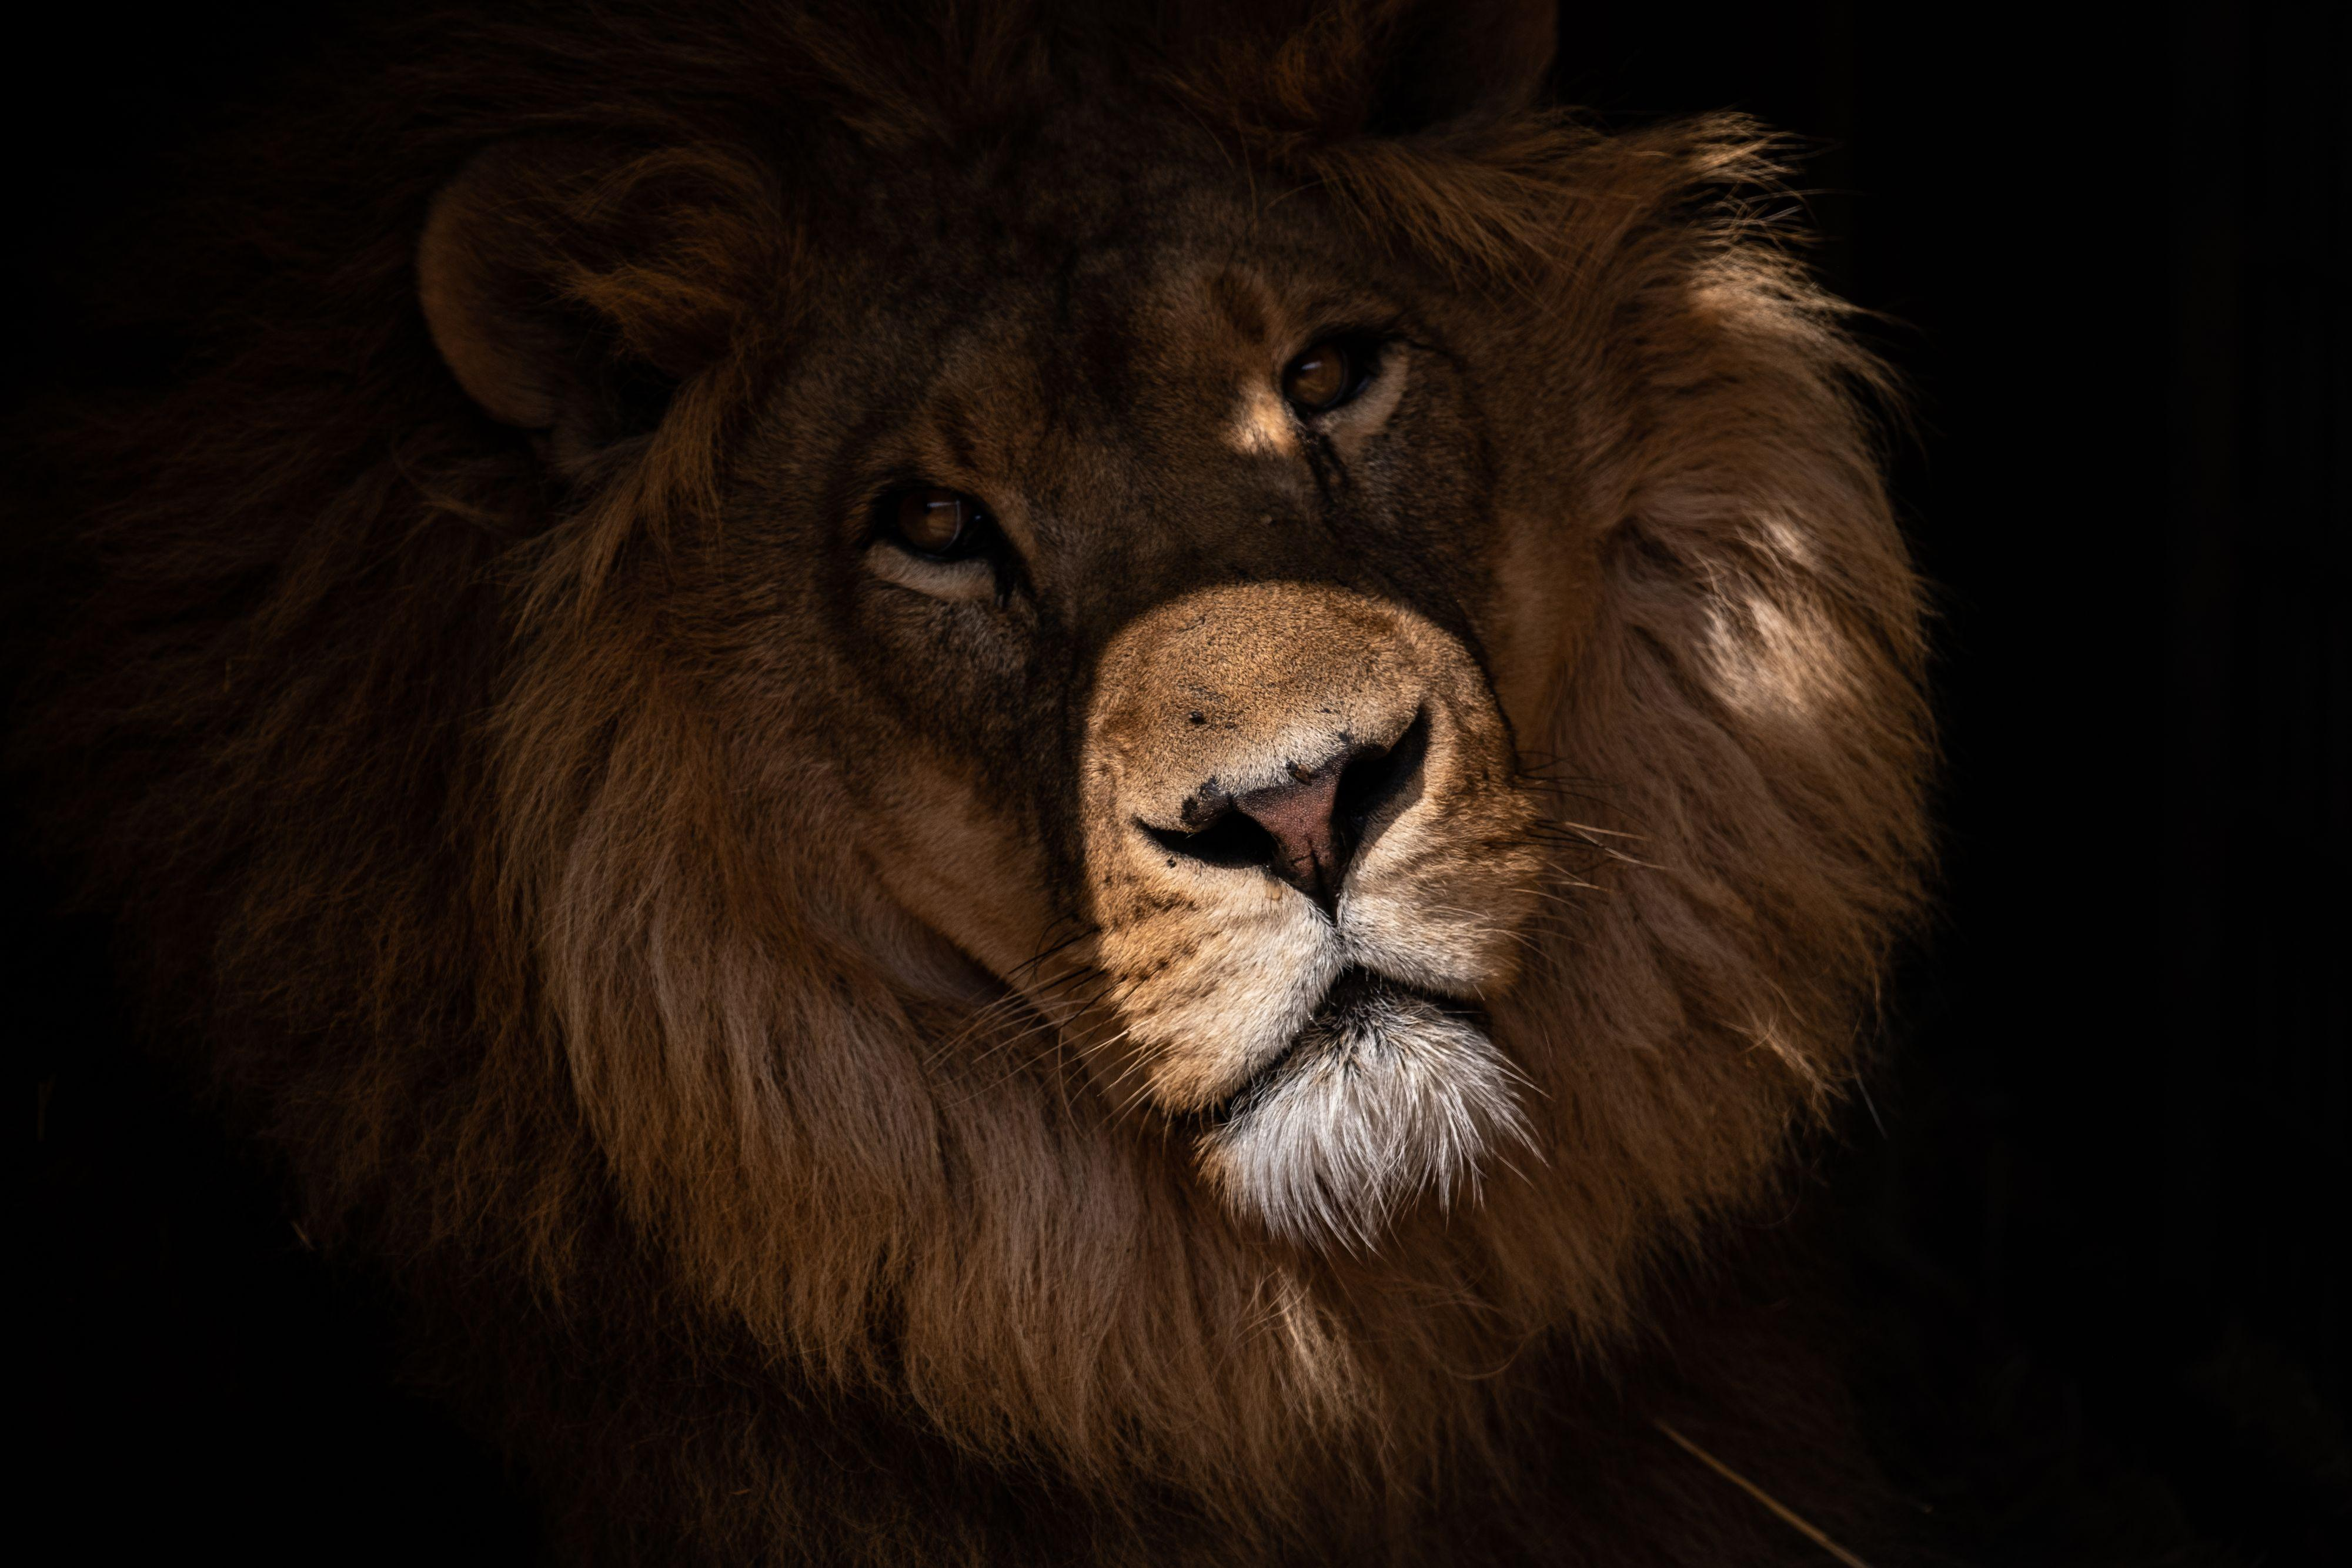 Support Lions in Need